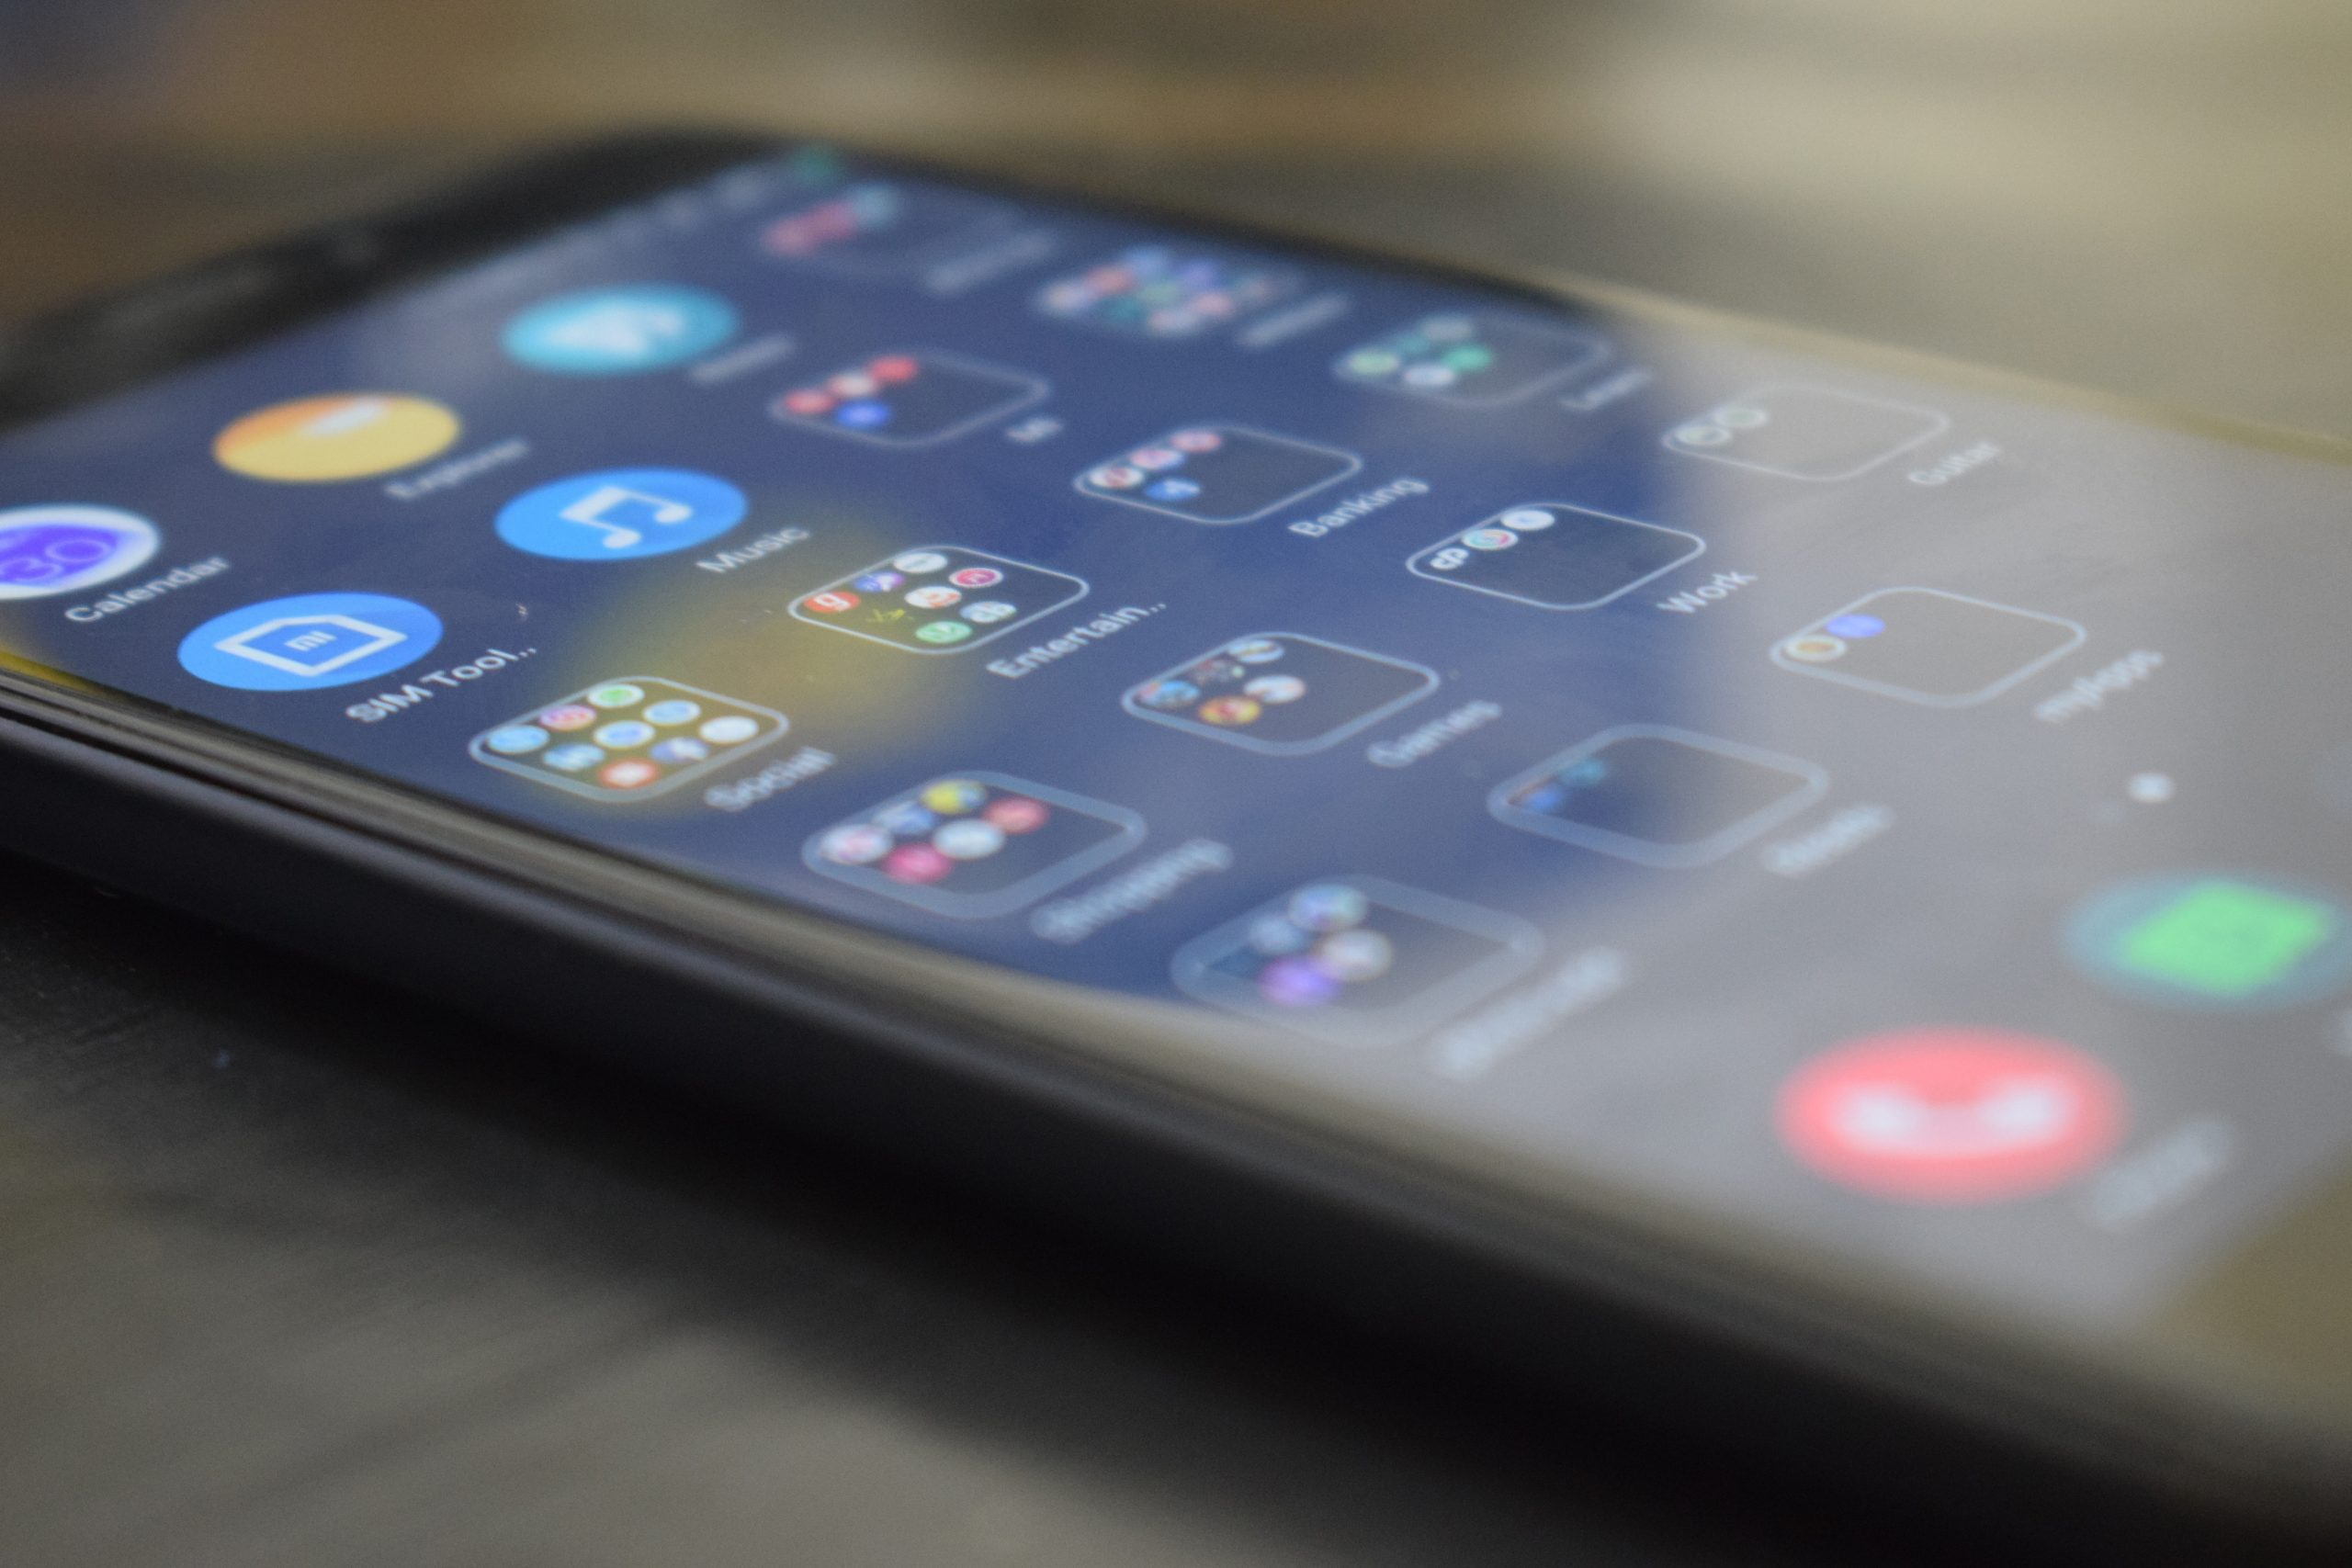 Close up image of a phone screen displaying app icons